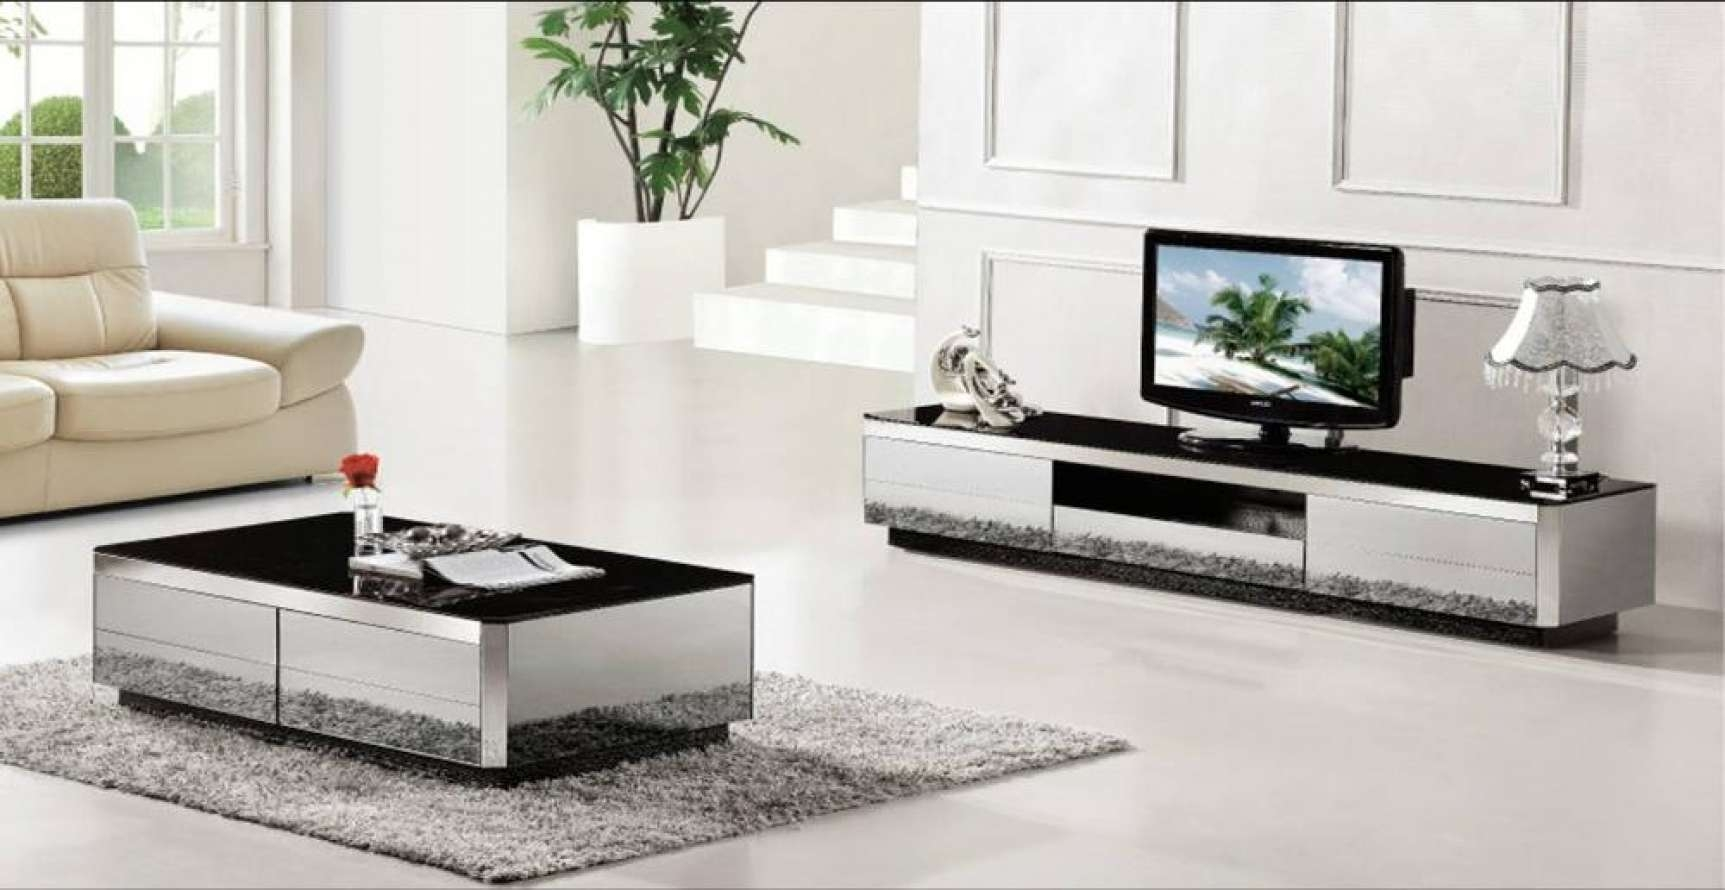 Coffee Table : Tv Stands Stand And Coffee Table Diy Matching Intended For Coffee Tables And Tv Stands (View 3 of 15)